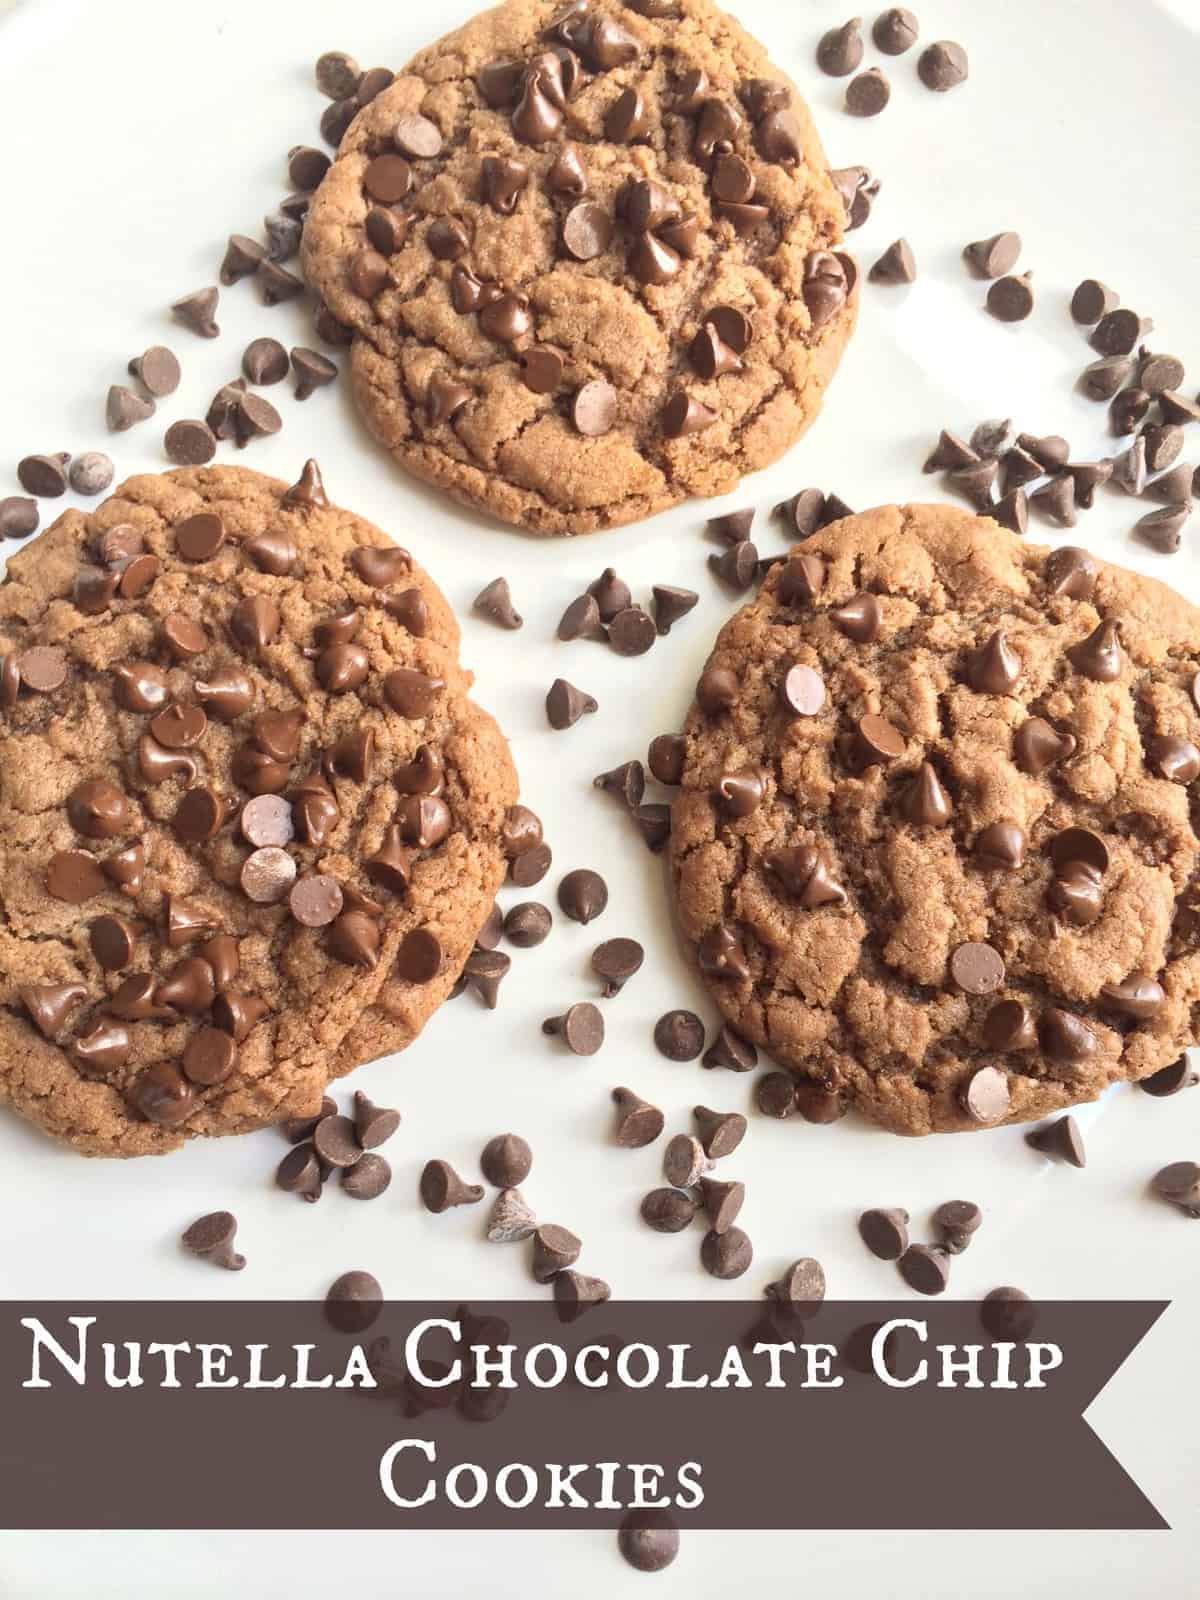 Chocolate Nutella Nut Cookies Recipes — Dishmaps